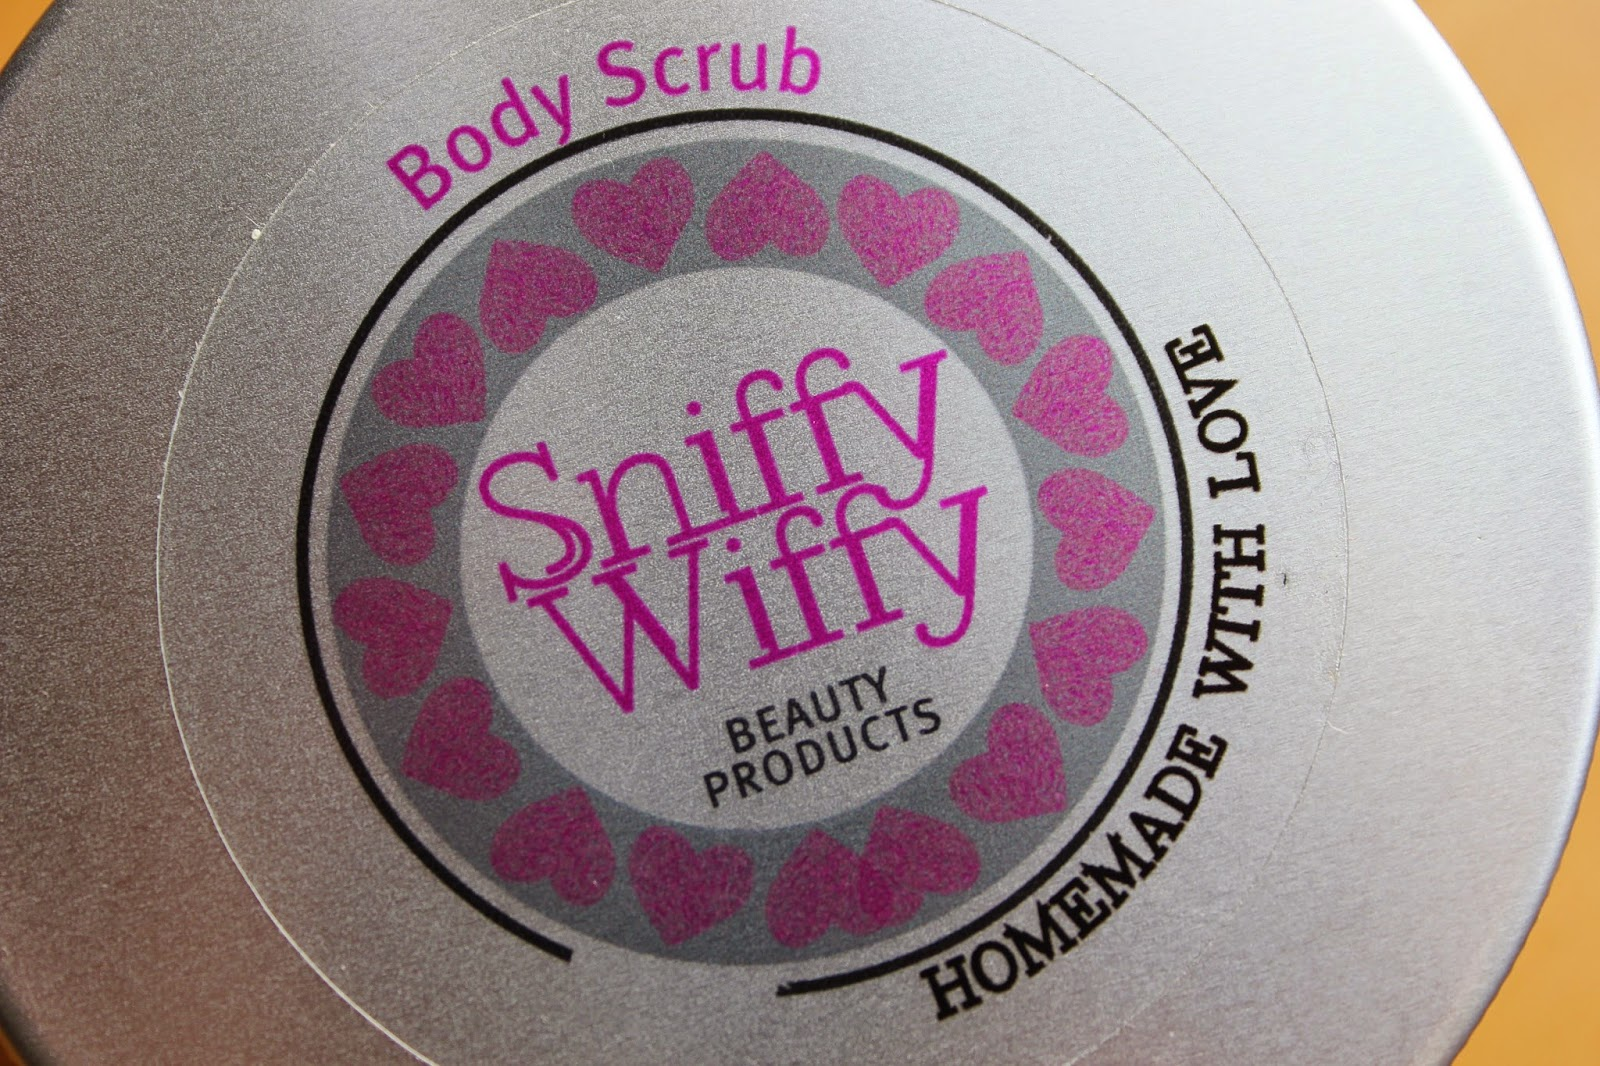 beauty-blogger-review-skincare-body-scrub-sniffy-wiffy-vanilla-product